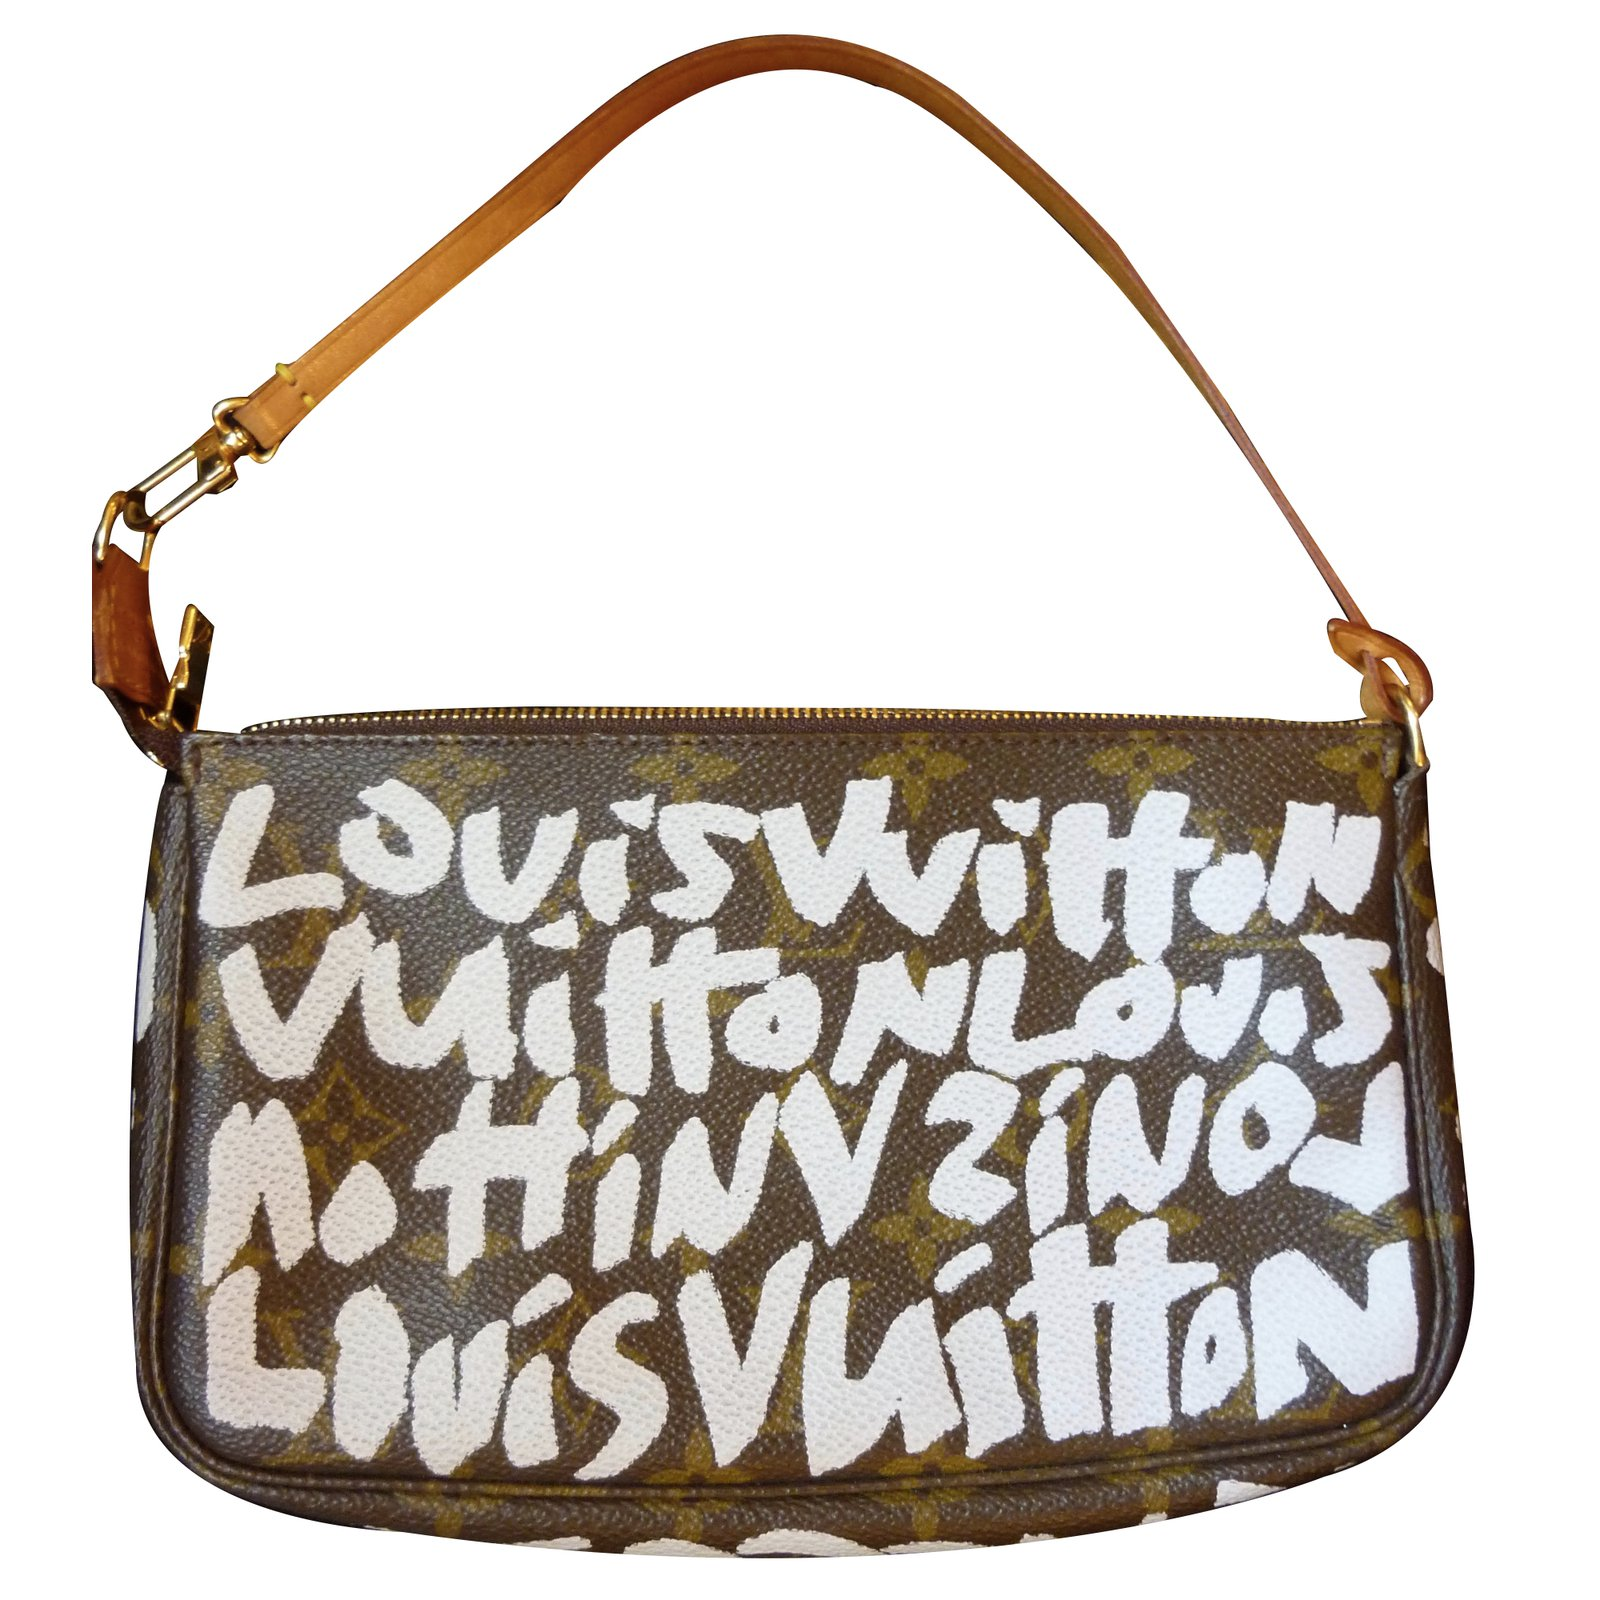 1f9ea1773928 Louis Vuitton Graffiti limited edition Clutch bags Leather